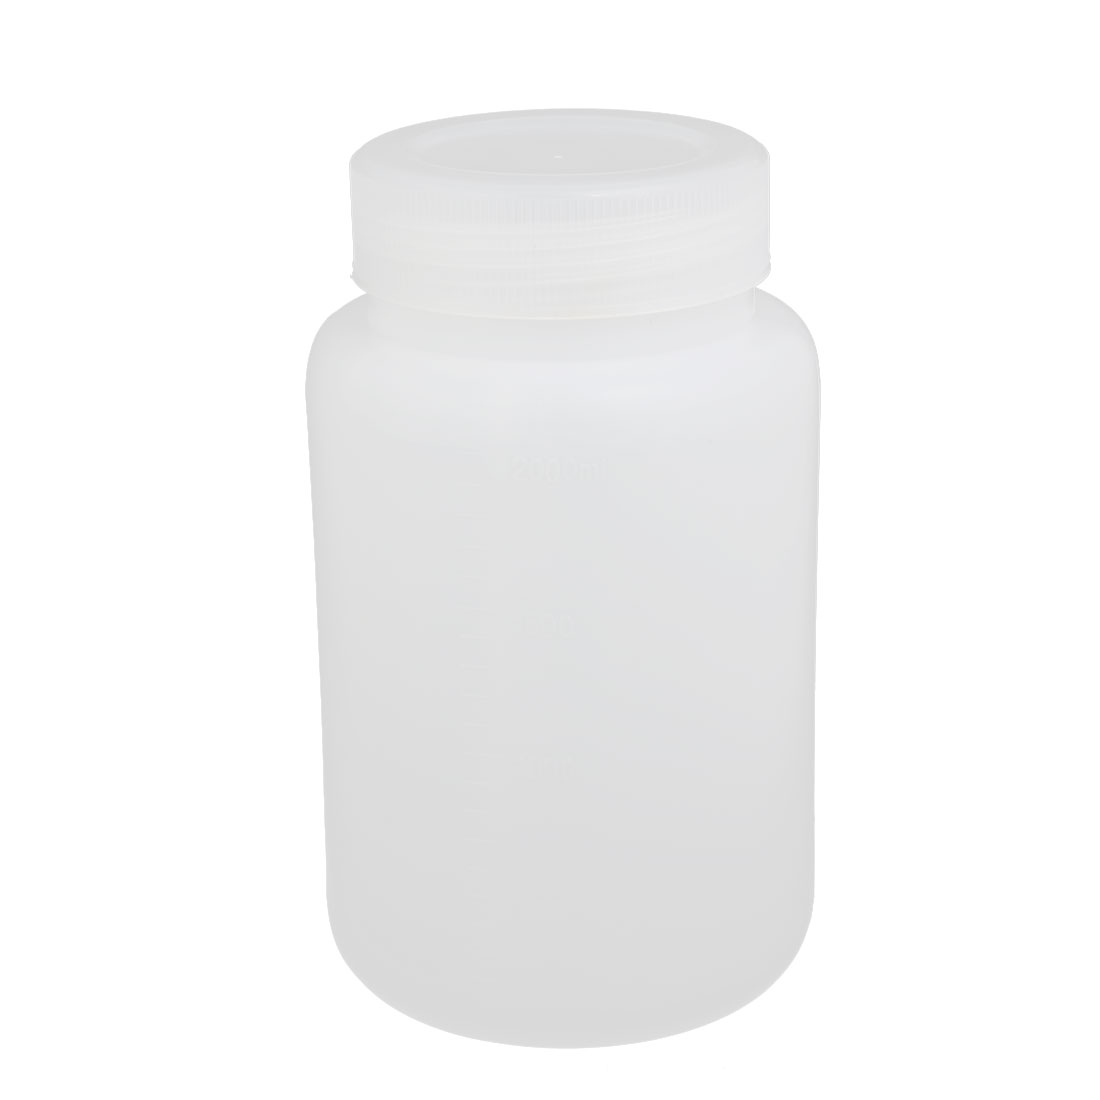 2000ml 75mm Dia Wide Mouth HDPE Plastic Round Graduated Bottle White